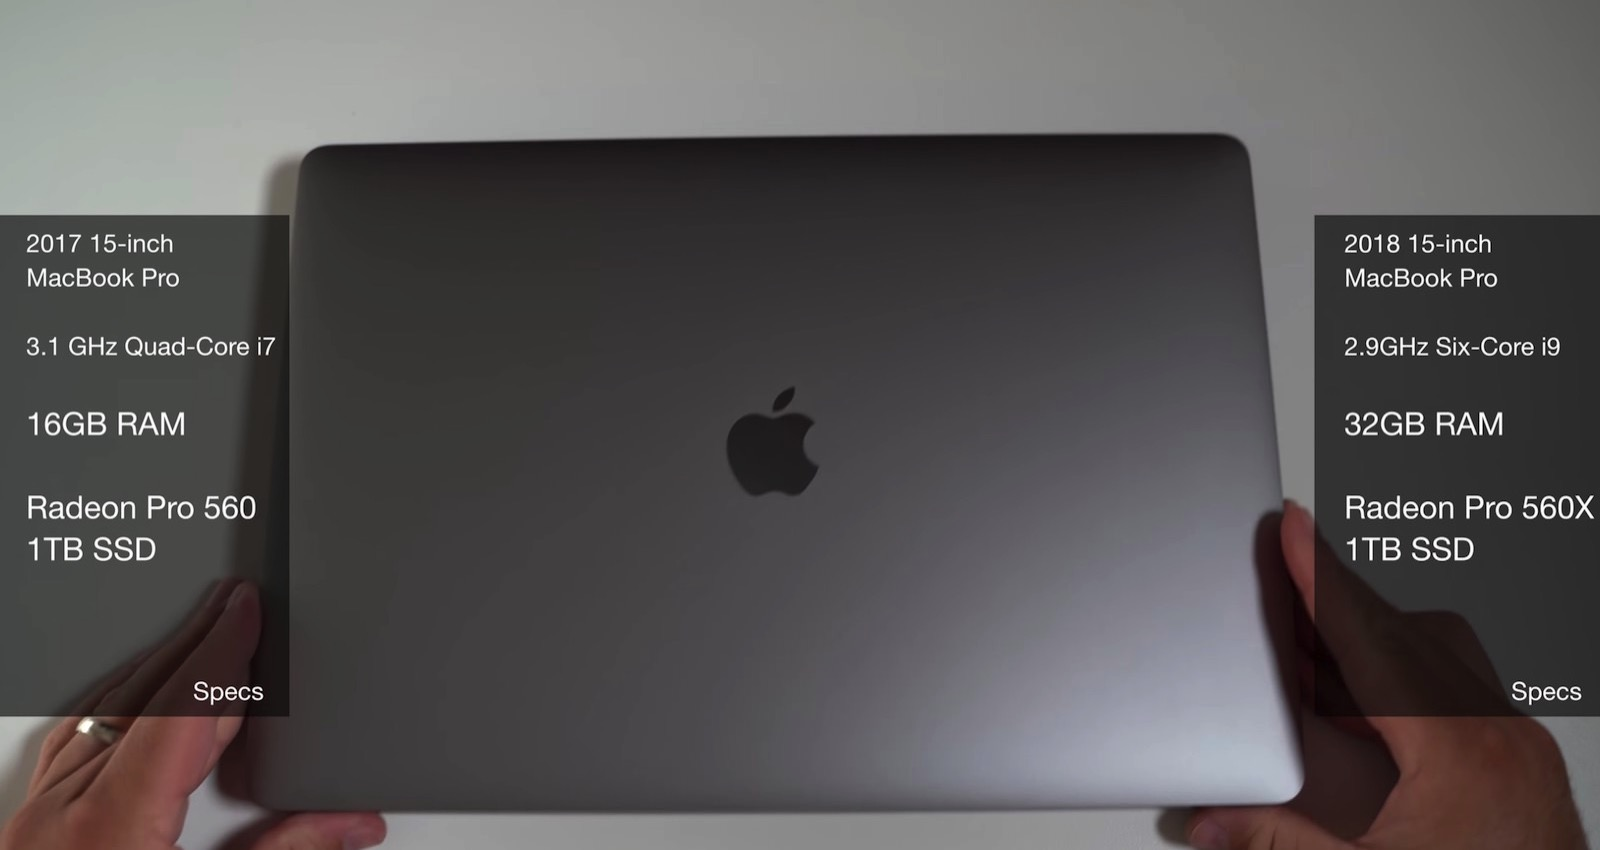 MacBook Pro 2018 2017 final cut comparison